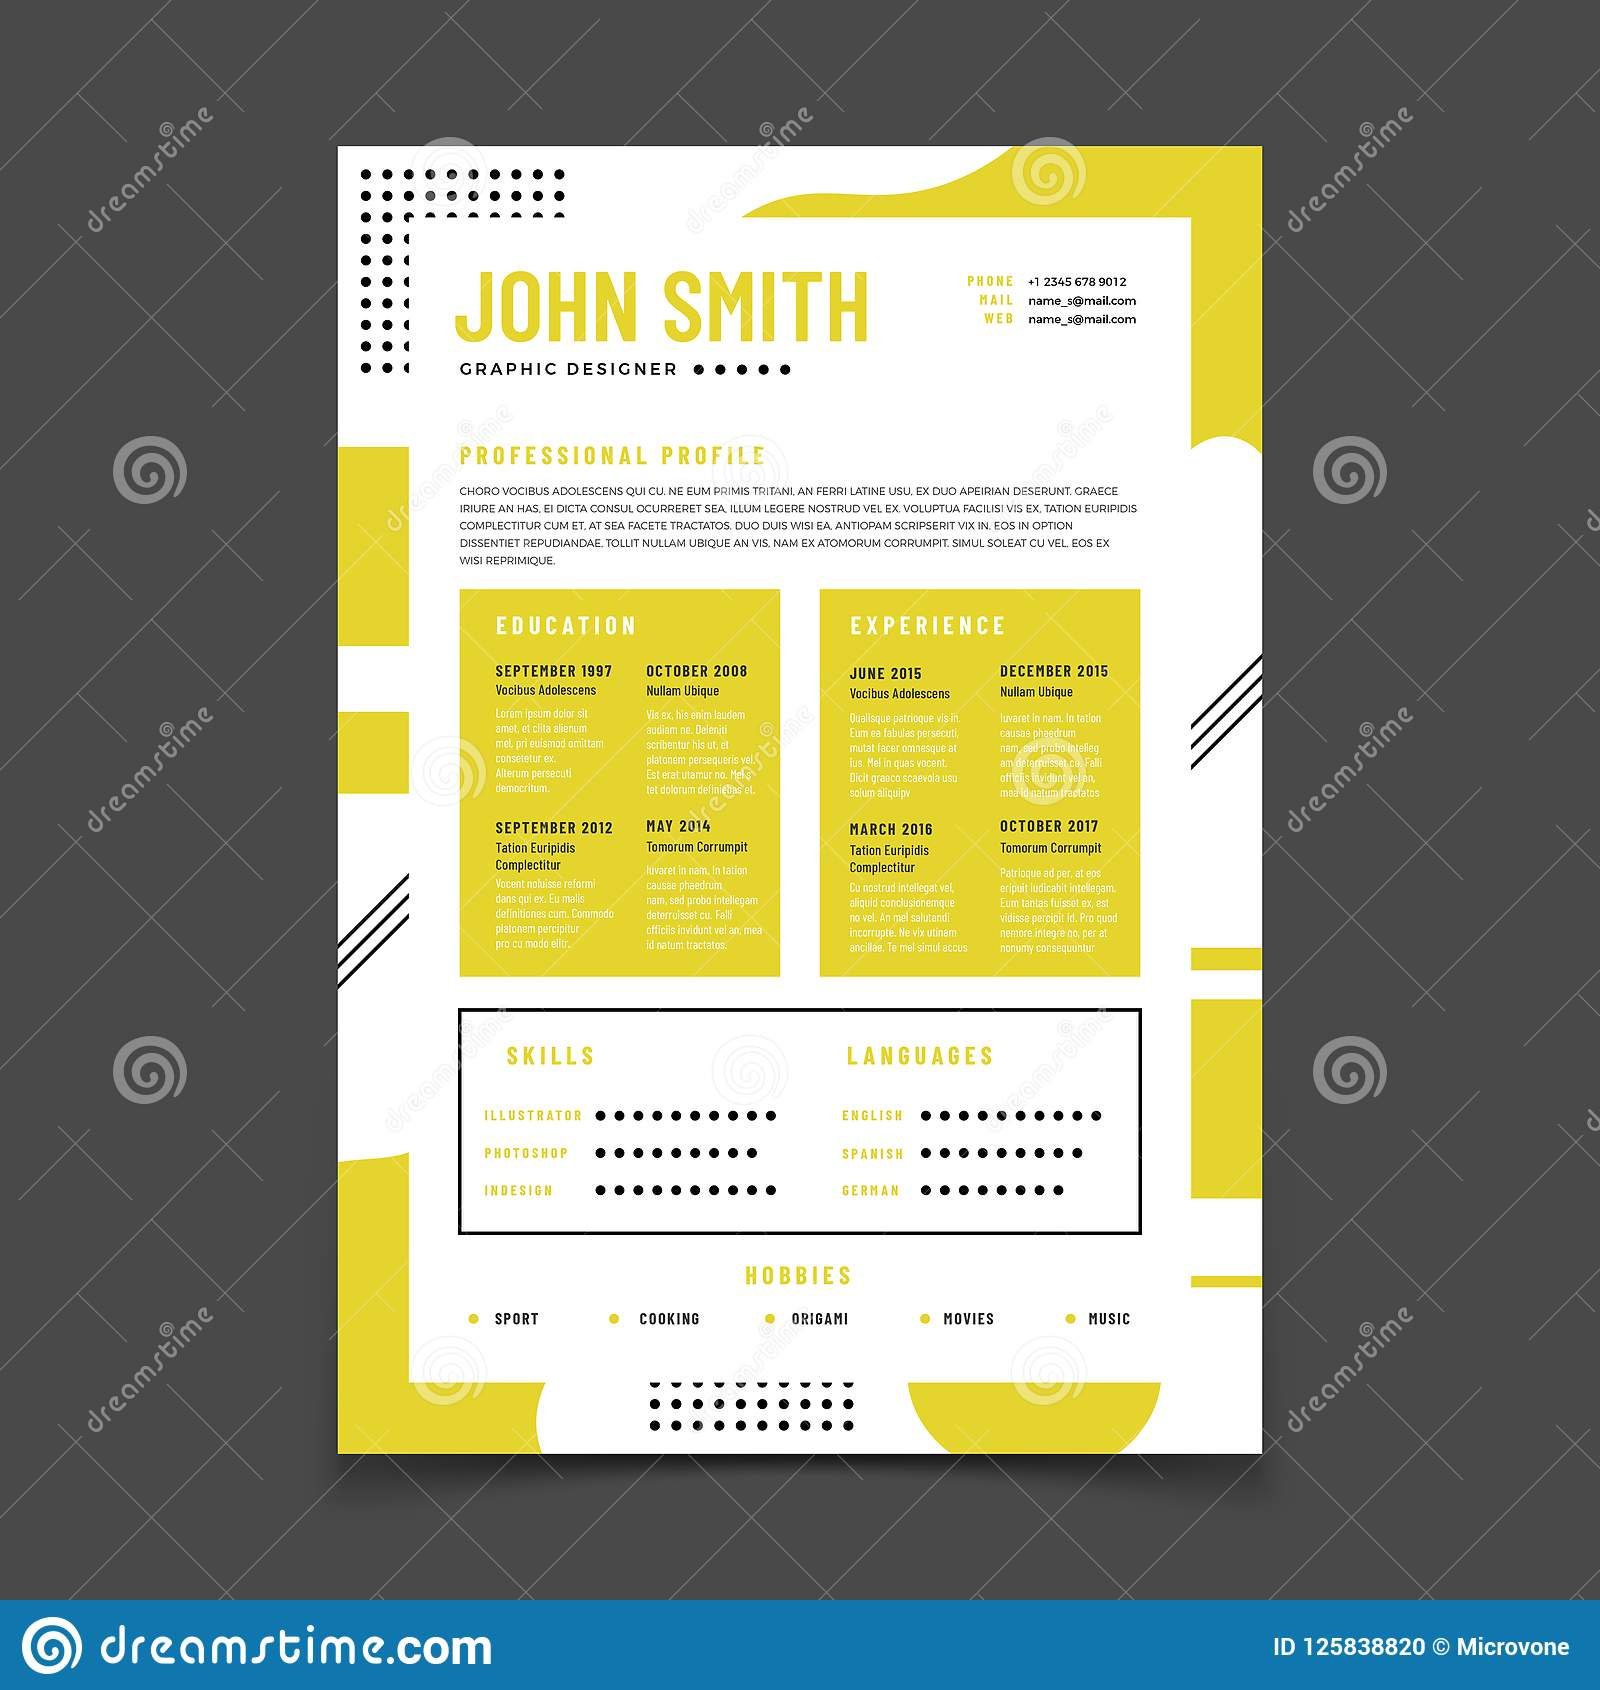 Cv Design Professional Resume With Business Details Curriculum And Best Job Vector Infographic Mockup Illustration Of Form For Hr